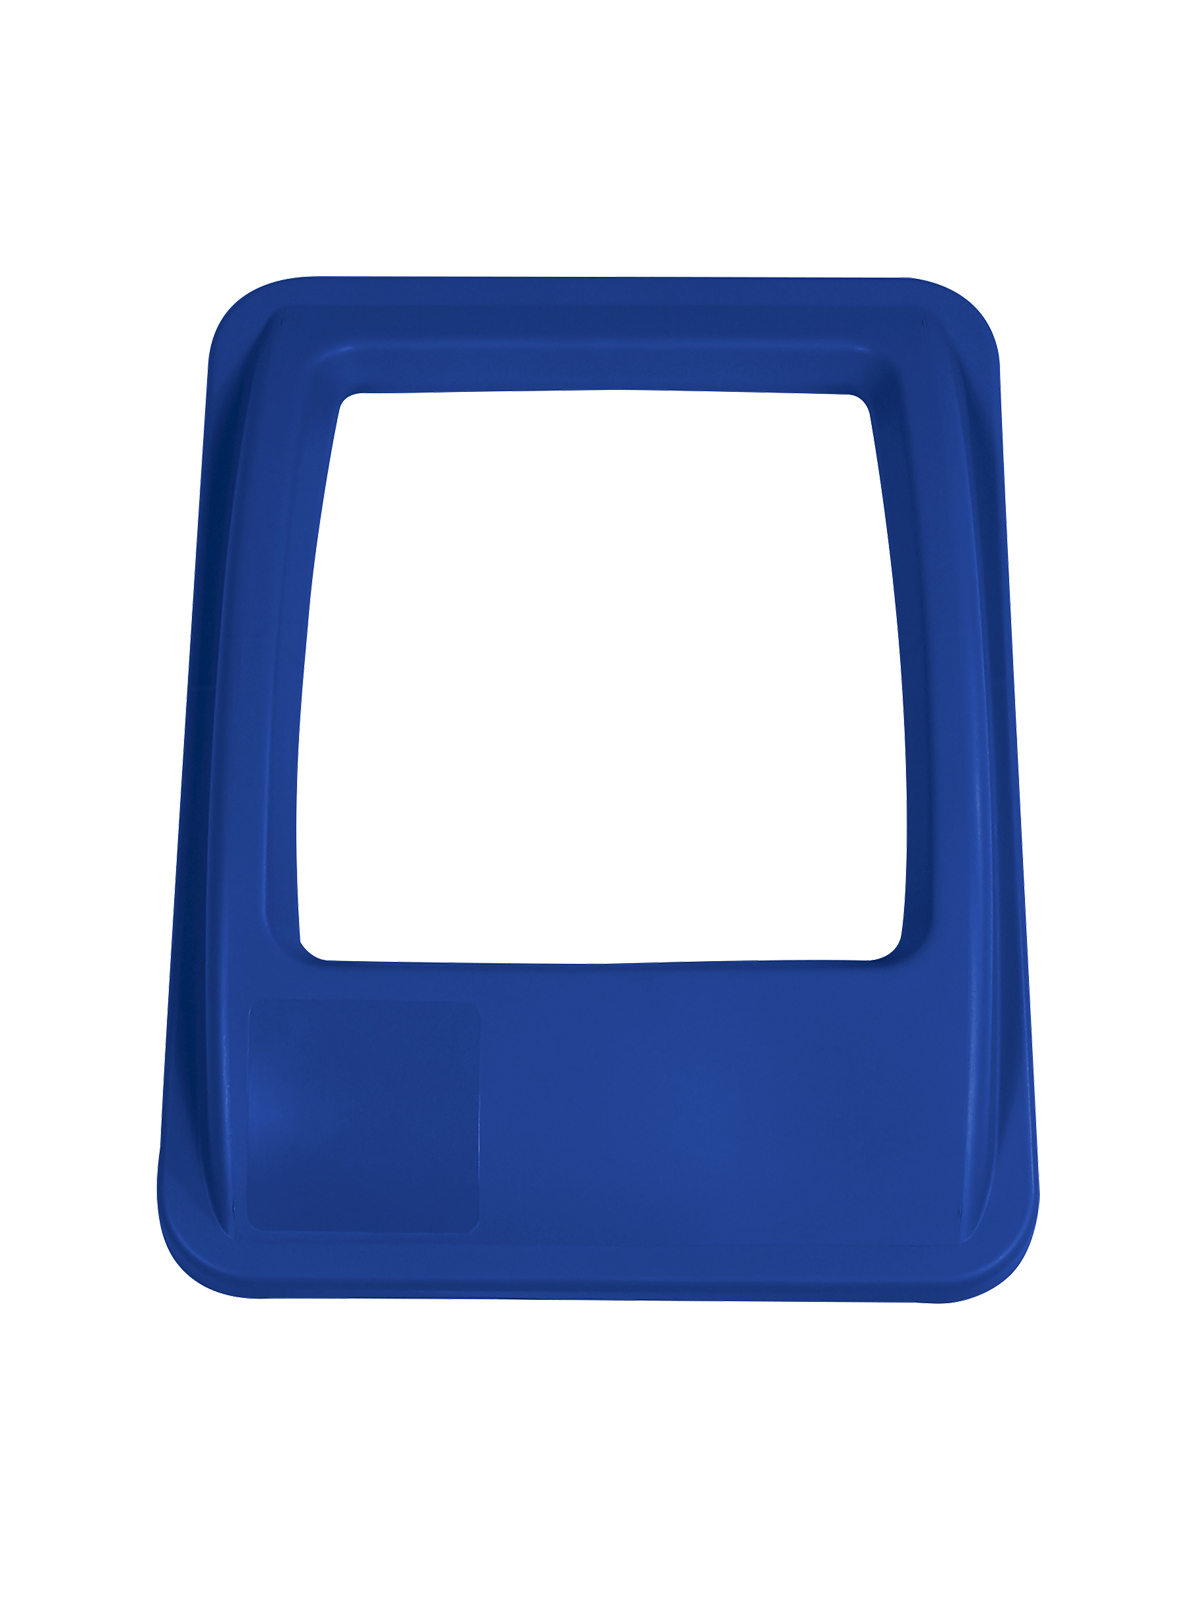 WASTE WATCHER XL - Lid - Full - Royal Blue